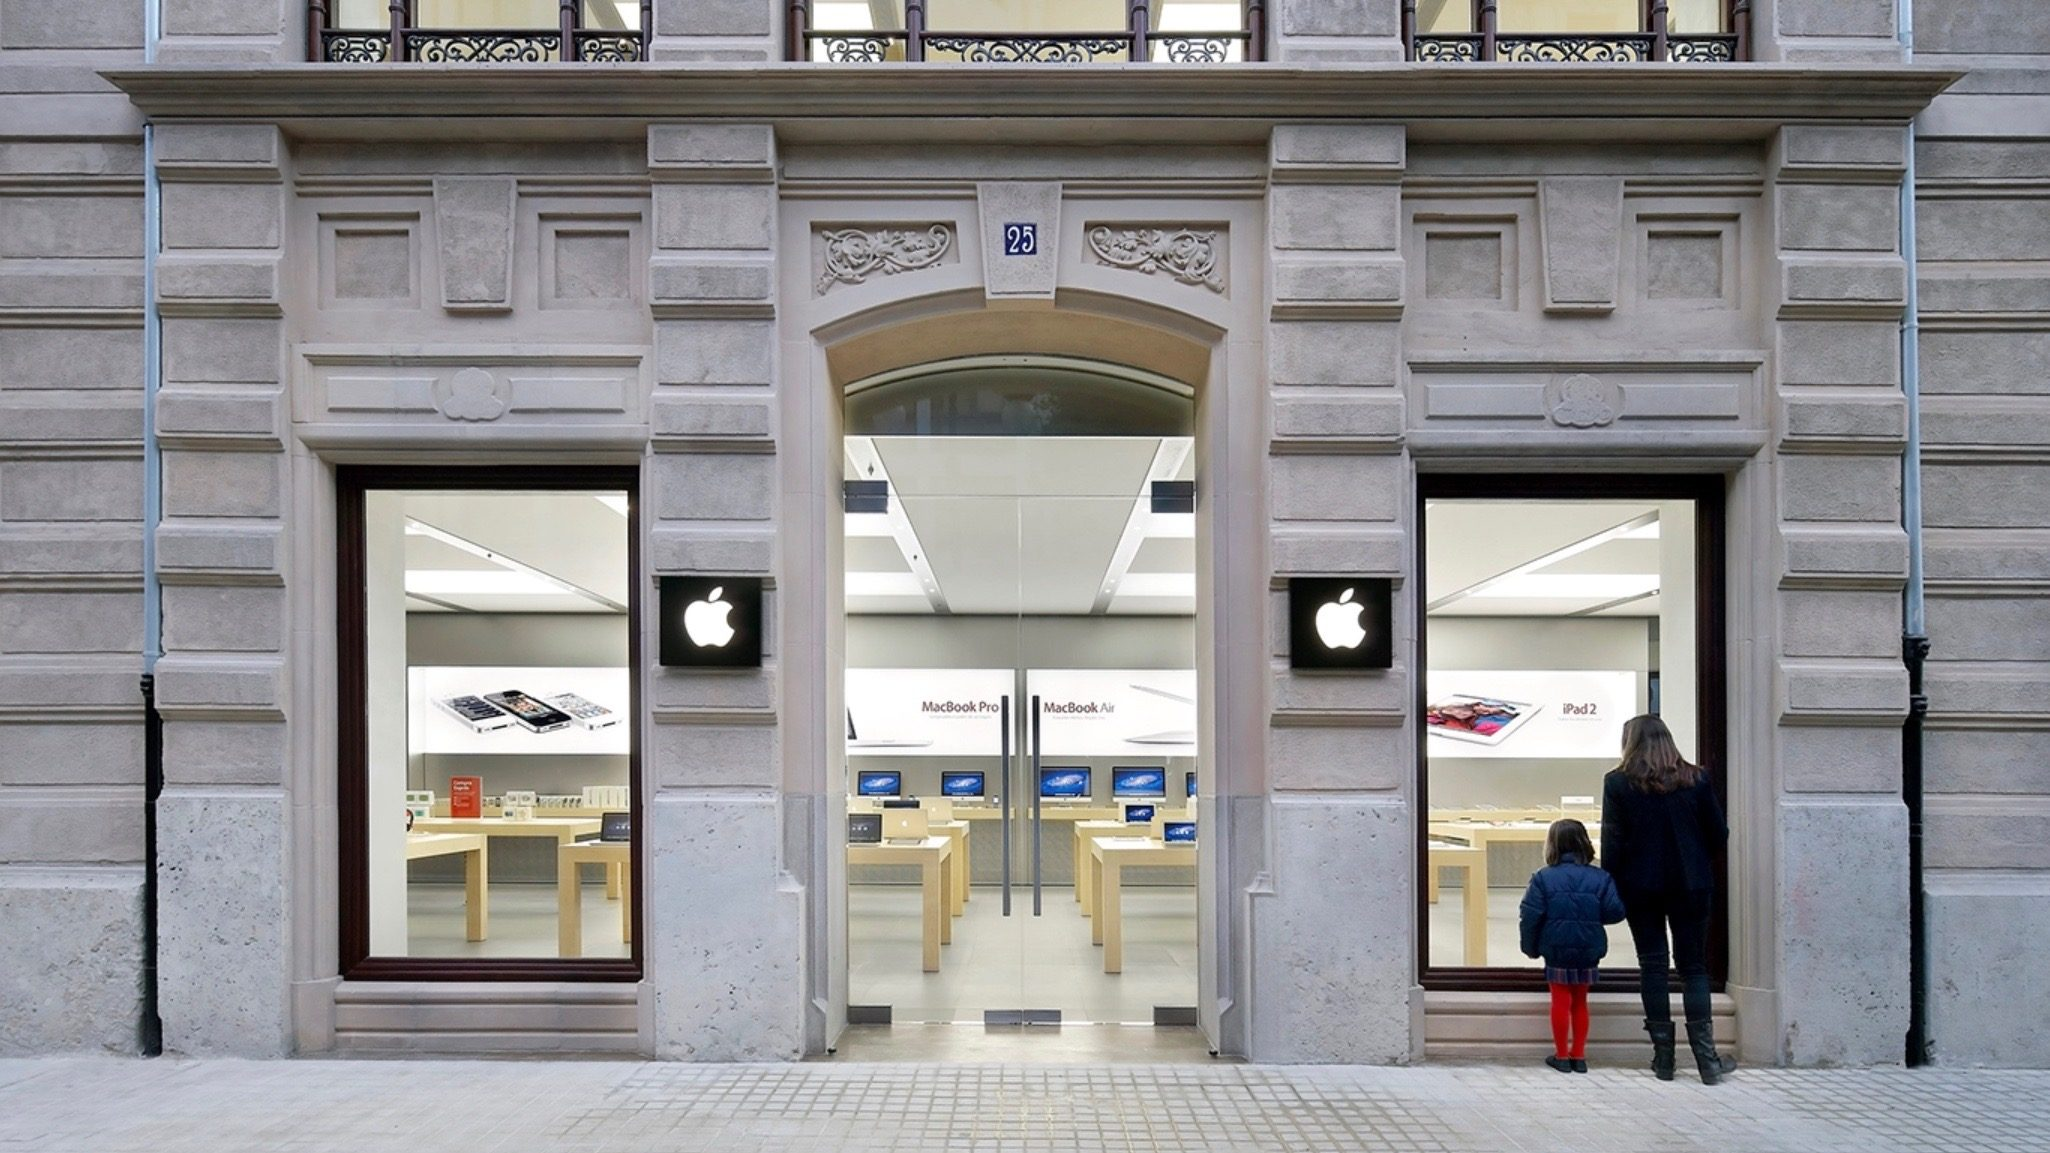 Firefighters Respond to Another Apple Store Due to iPhone Battery Explosion